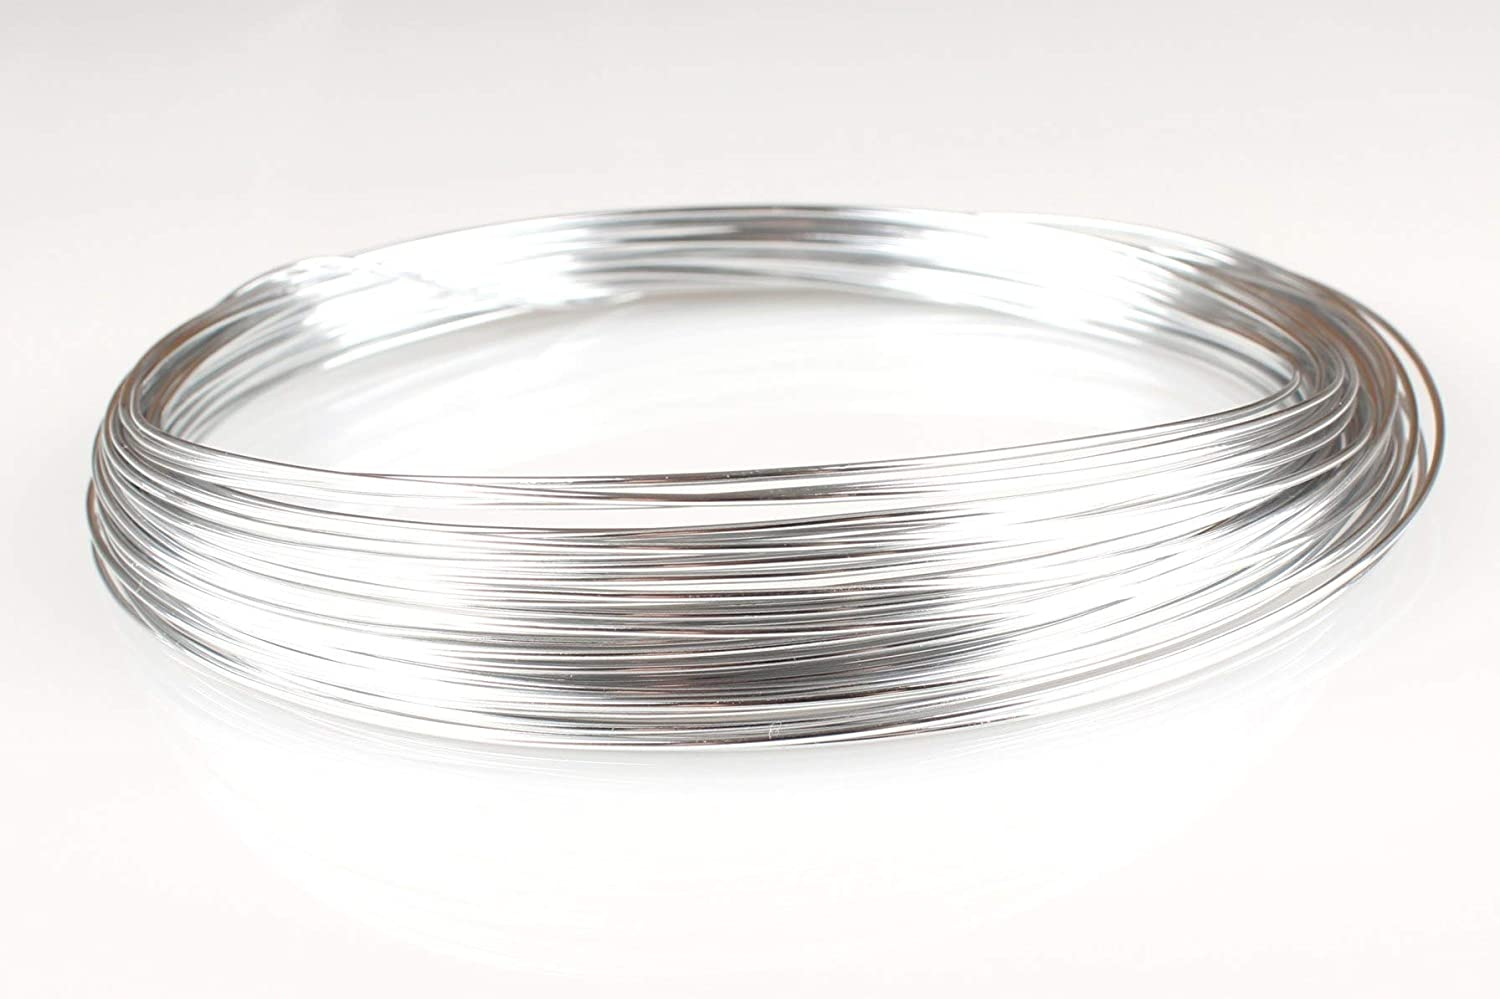 Silver Aluminum Wire 30 ft Creacraft Beading Wire 10m 2mm